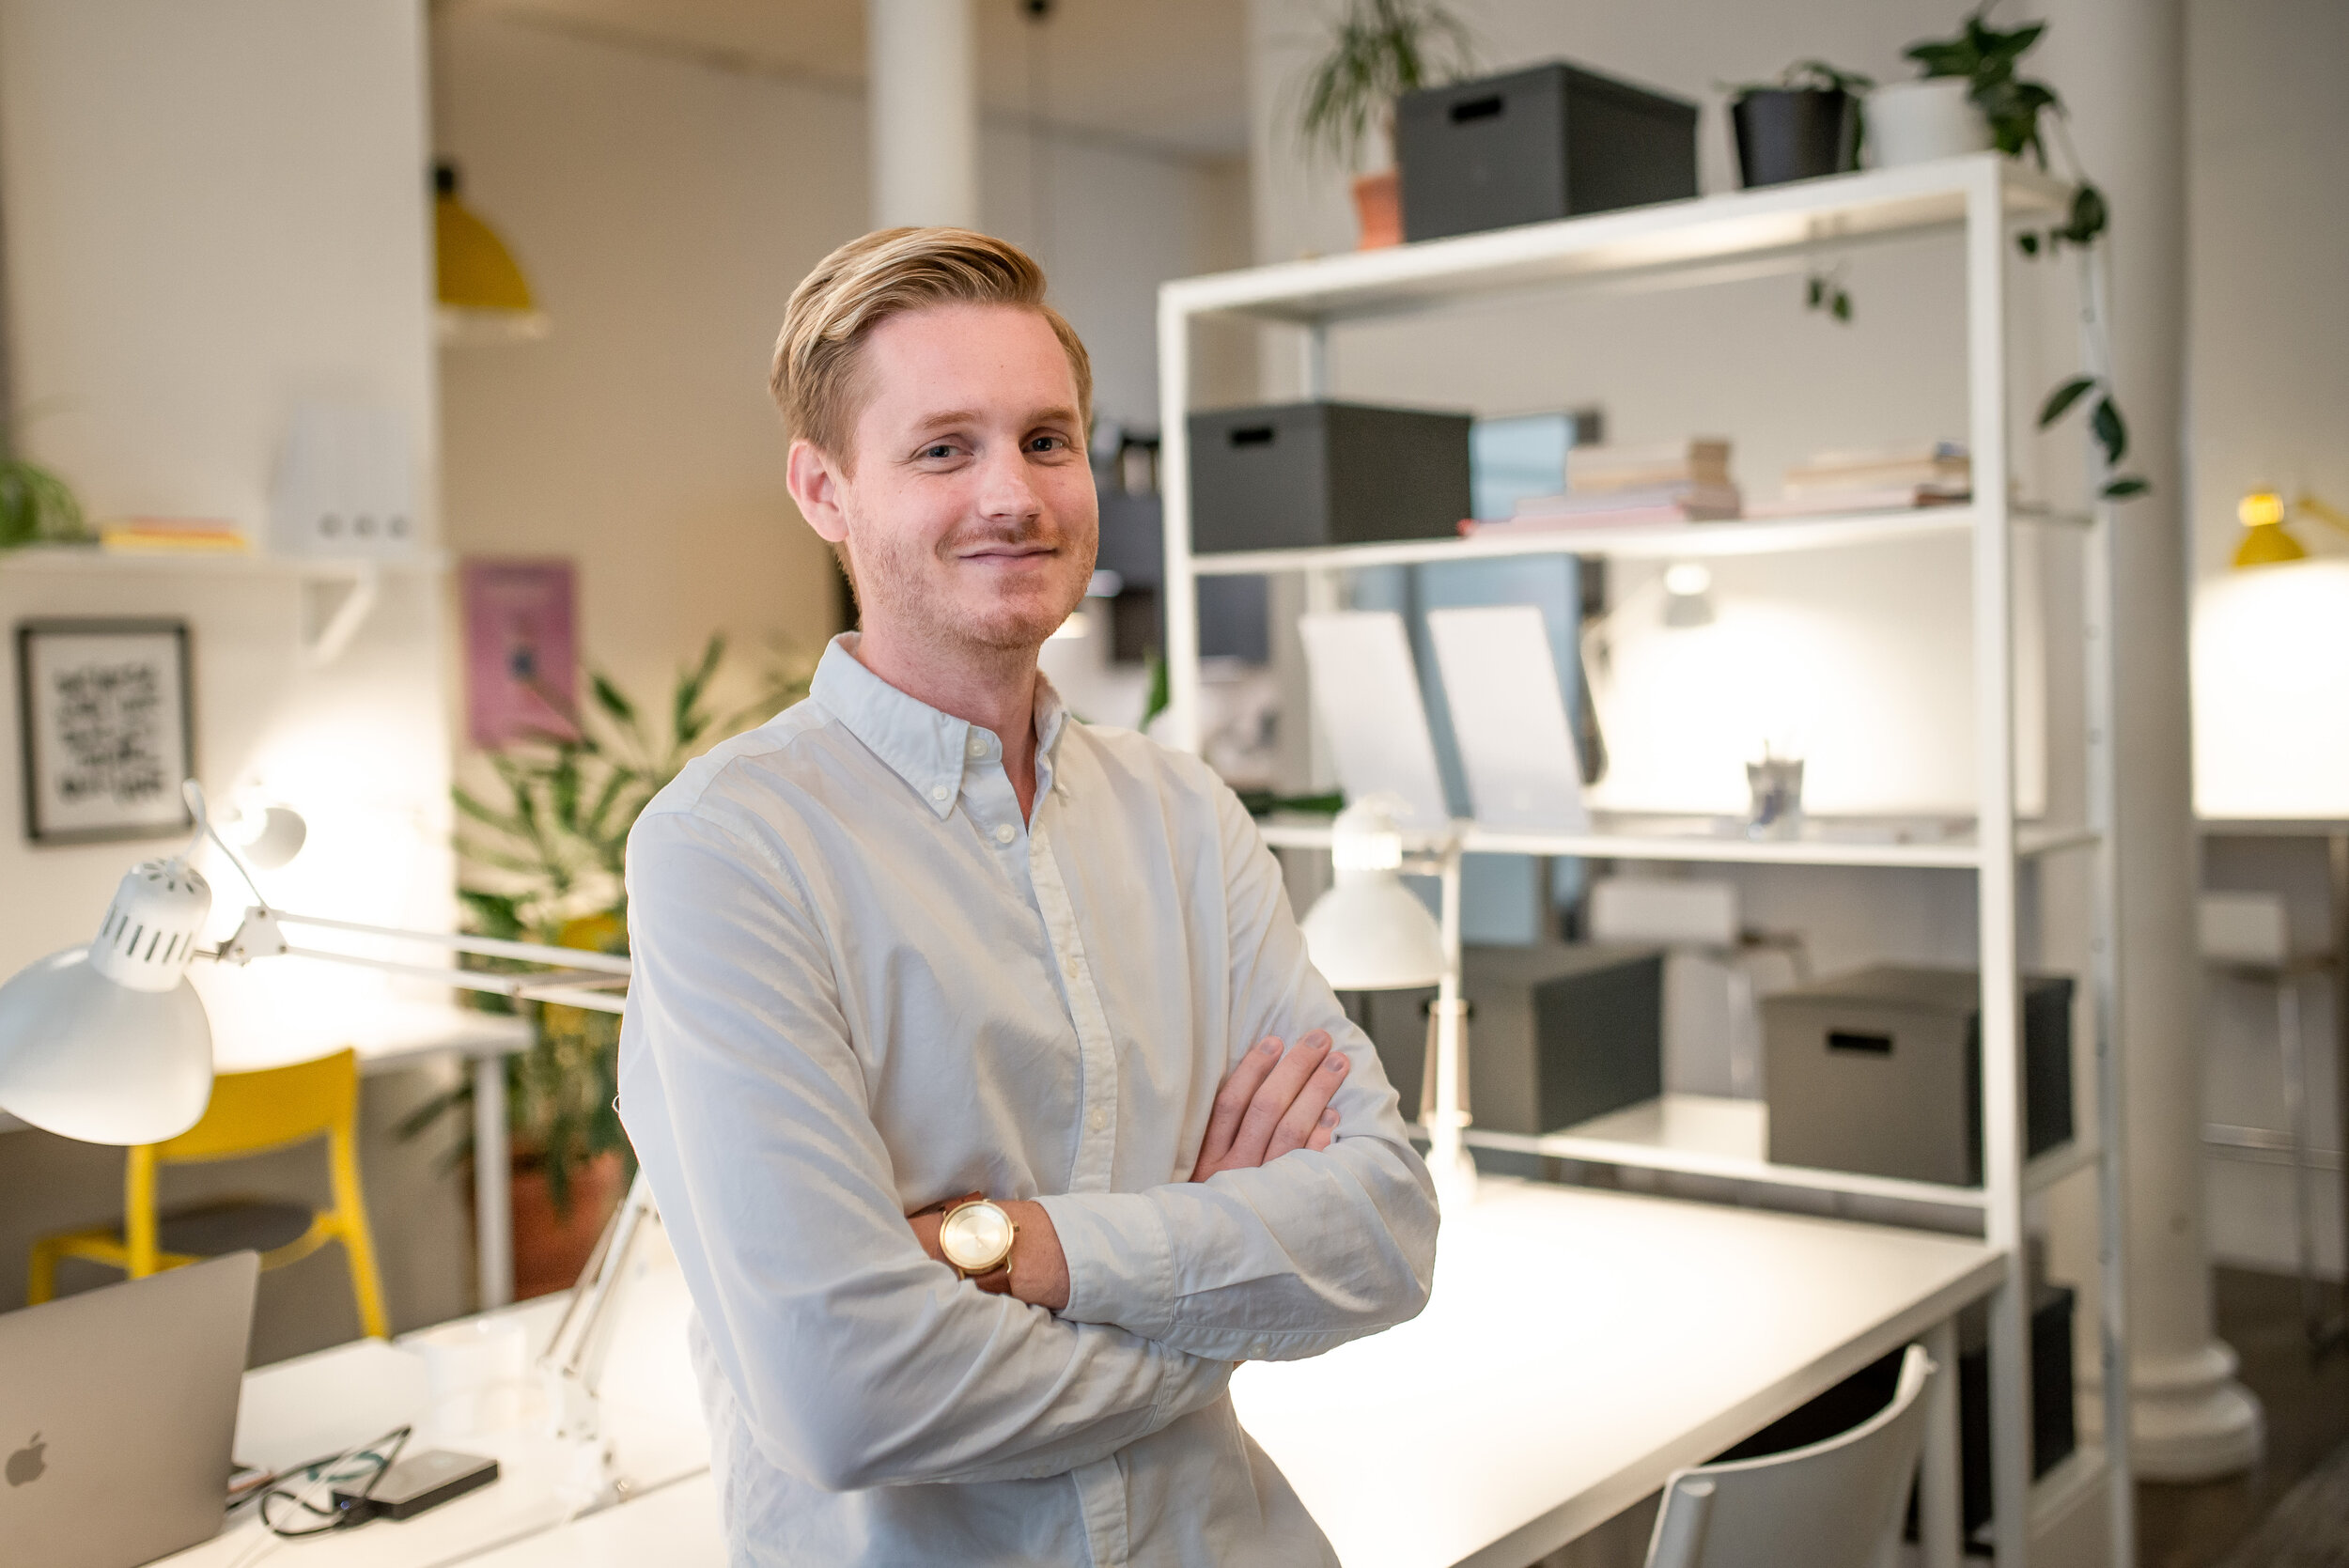 Philip Axelsson is studying content management at Malmö Yrkeshögskola and is doing his internship at Box Space Coworking Malmö.